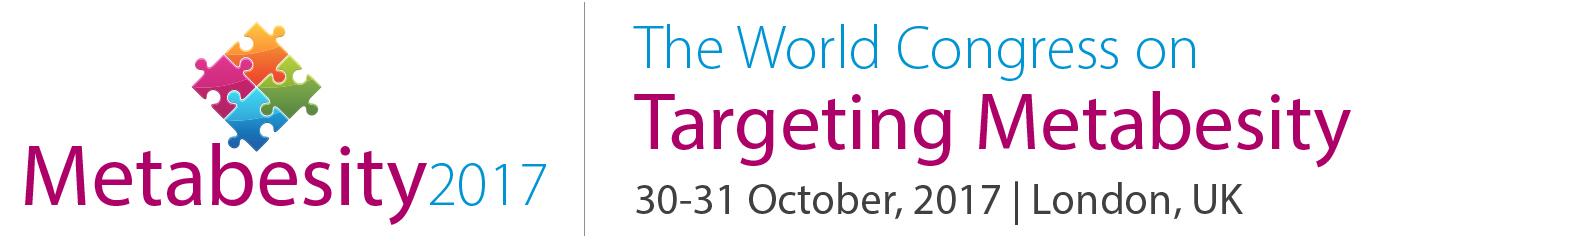 The World Congress on Targeting Metabesity